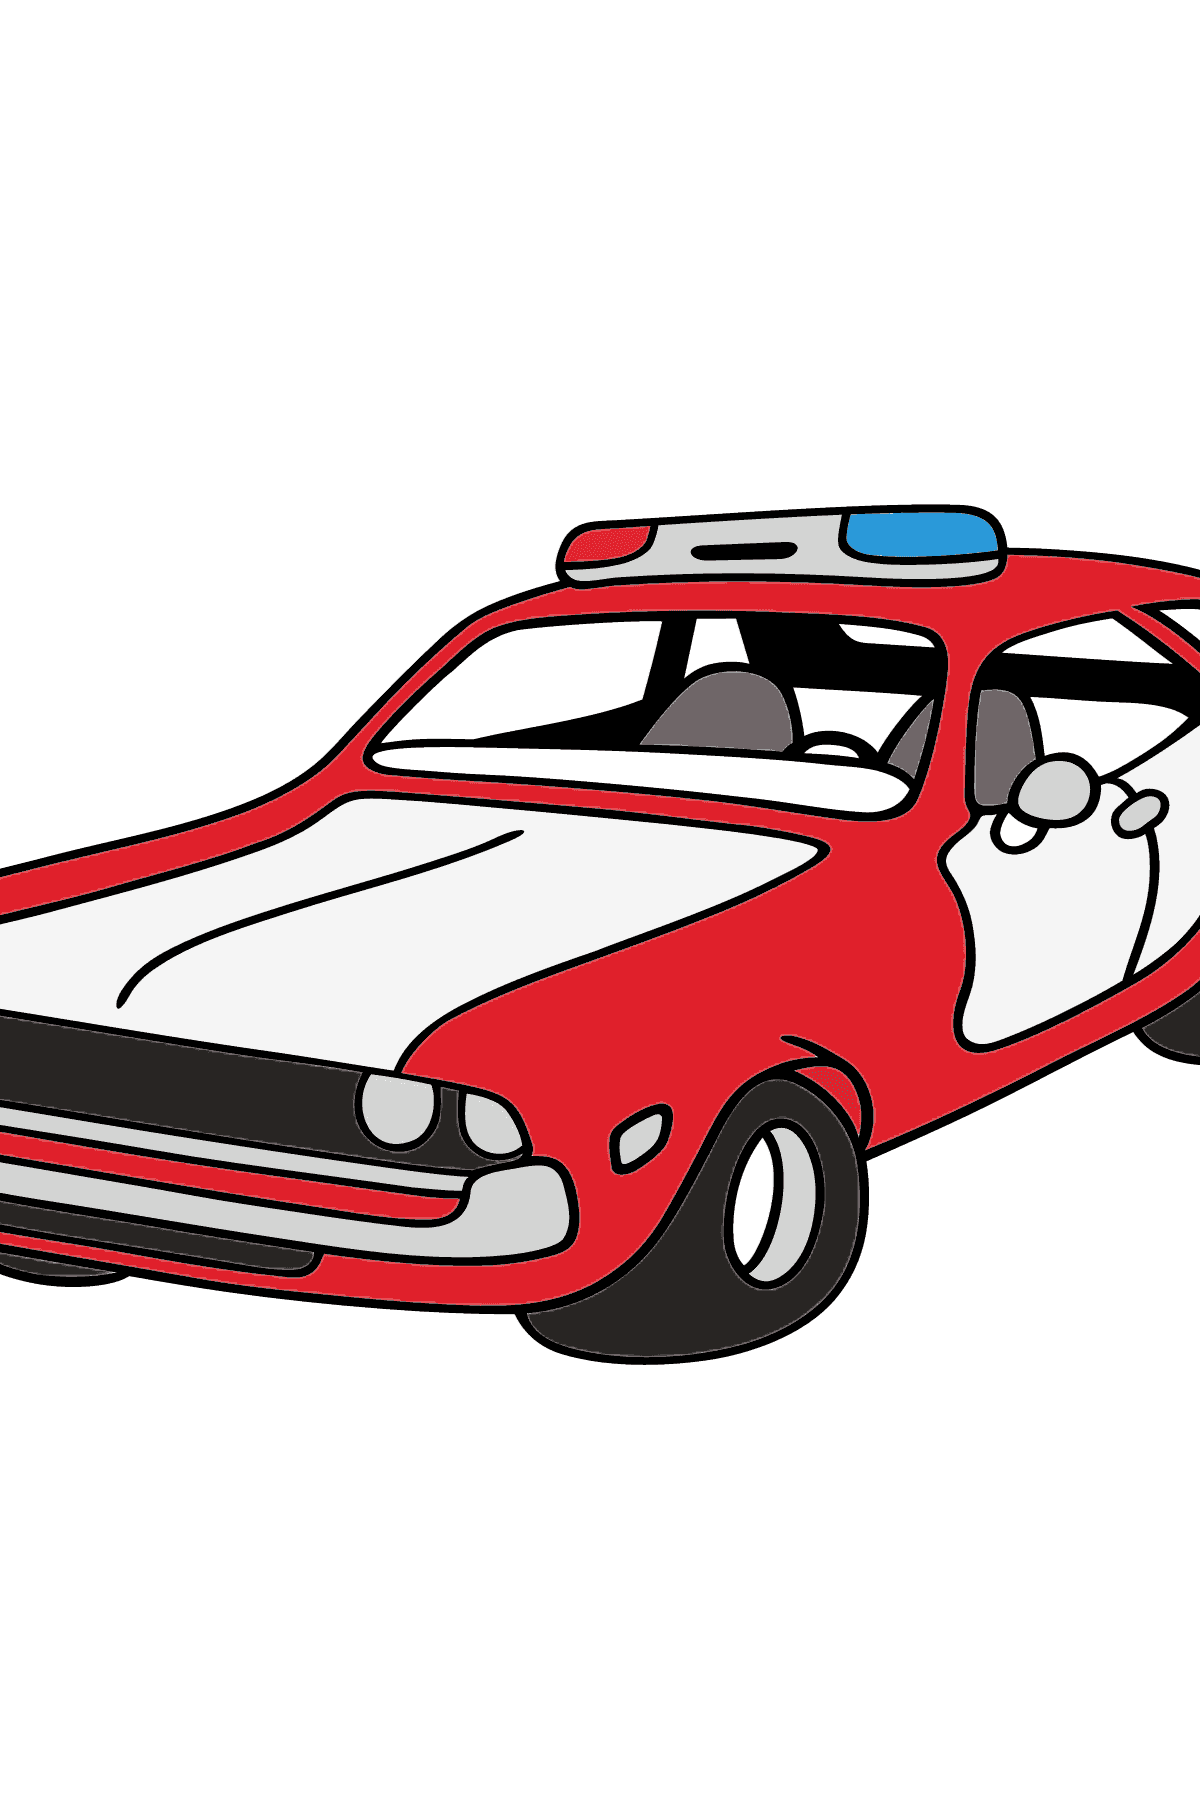 Coloring Page - A Red and White Police Car for Children